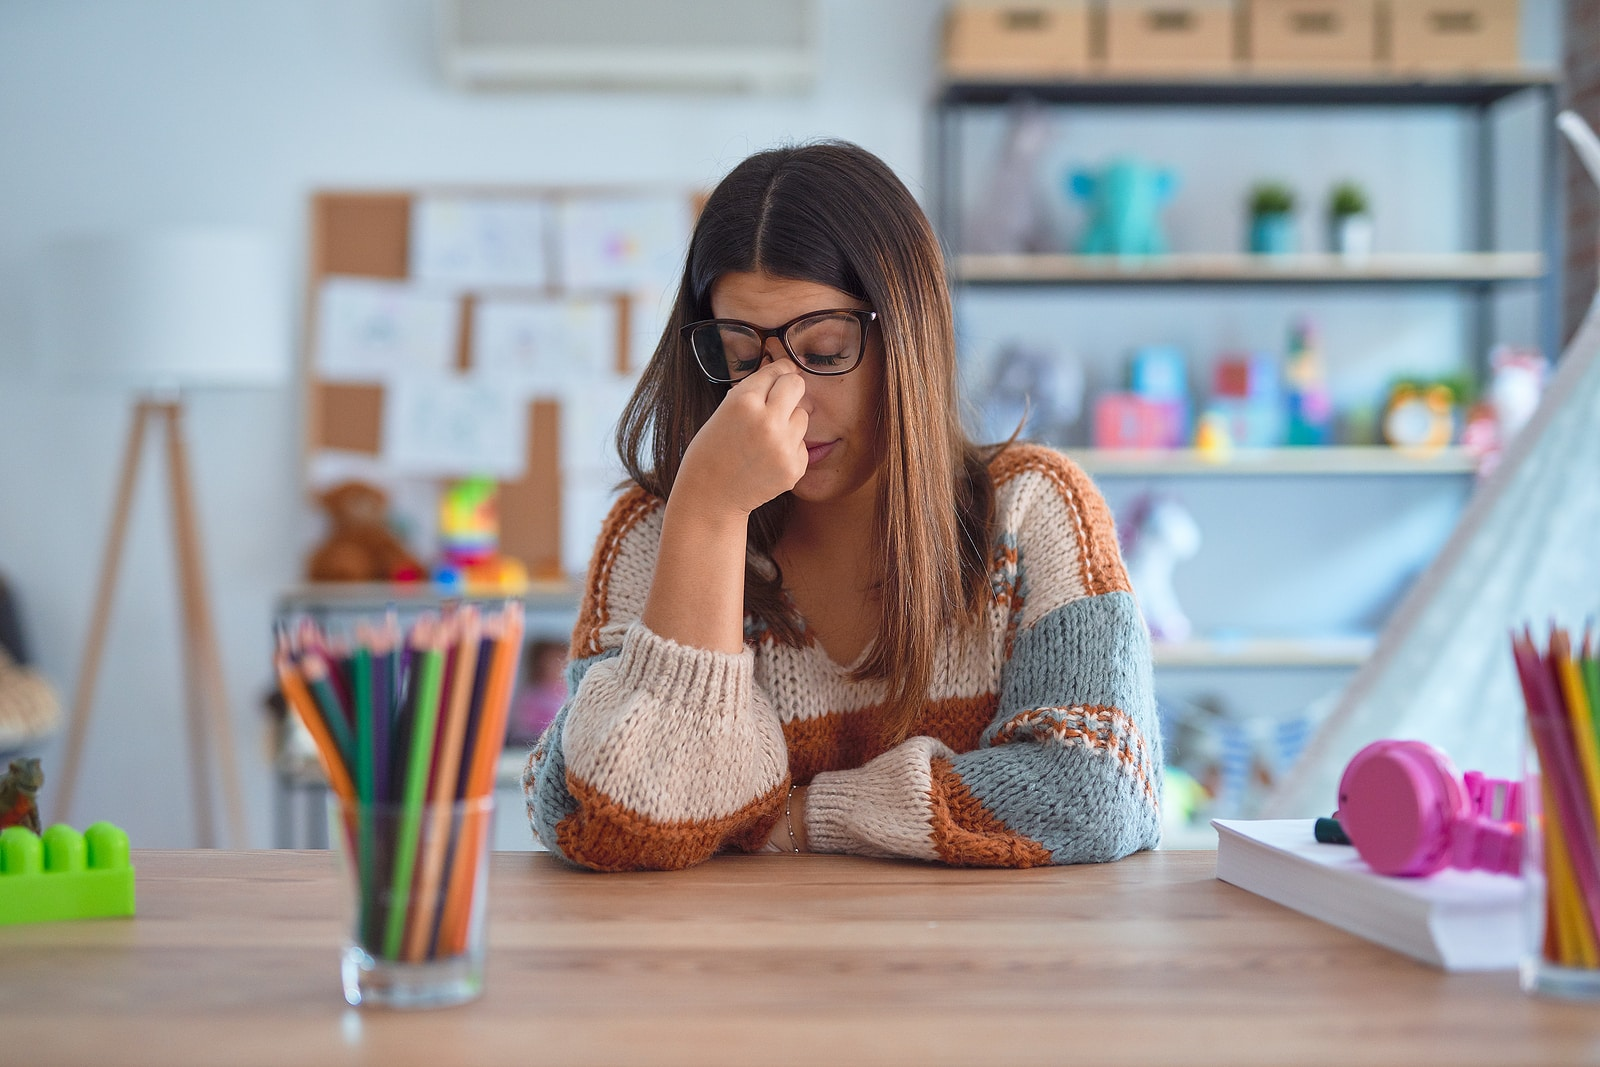 Can emotional stress cause pelvic pain- how are they connected- teacher in classroom stressed